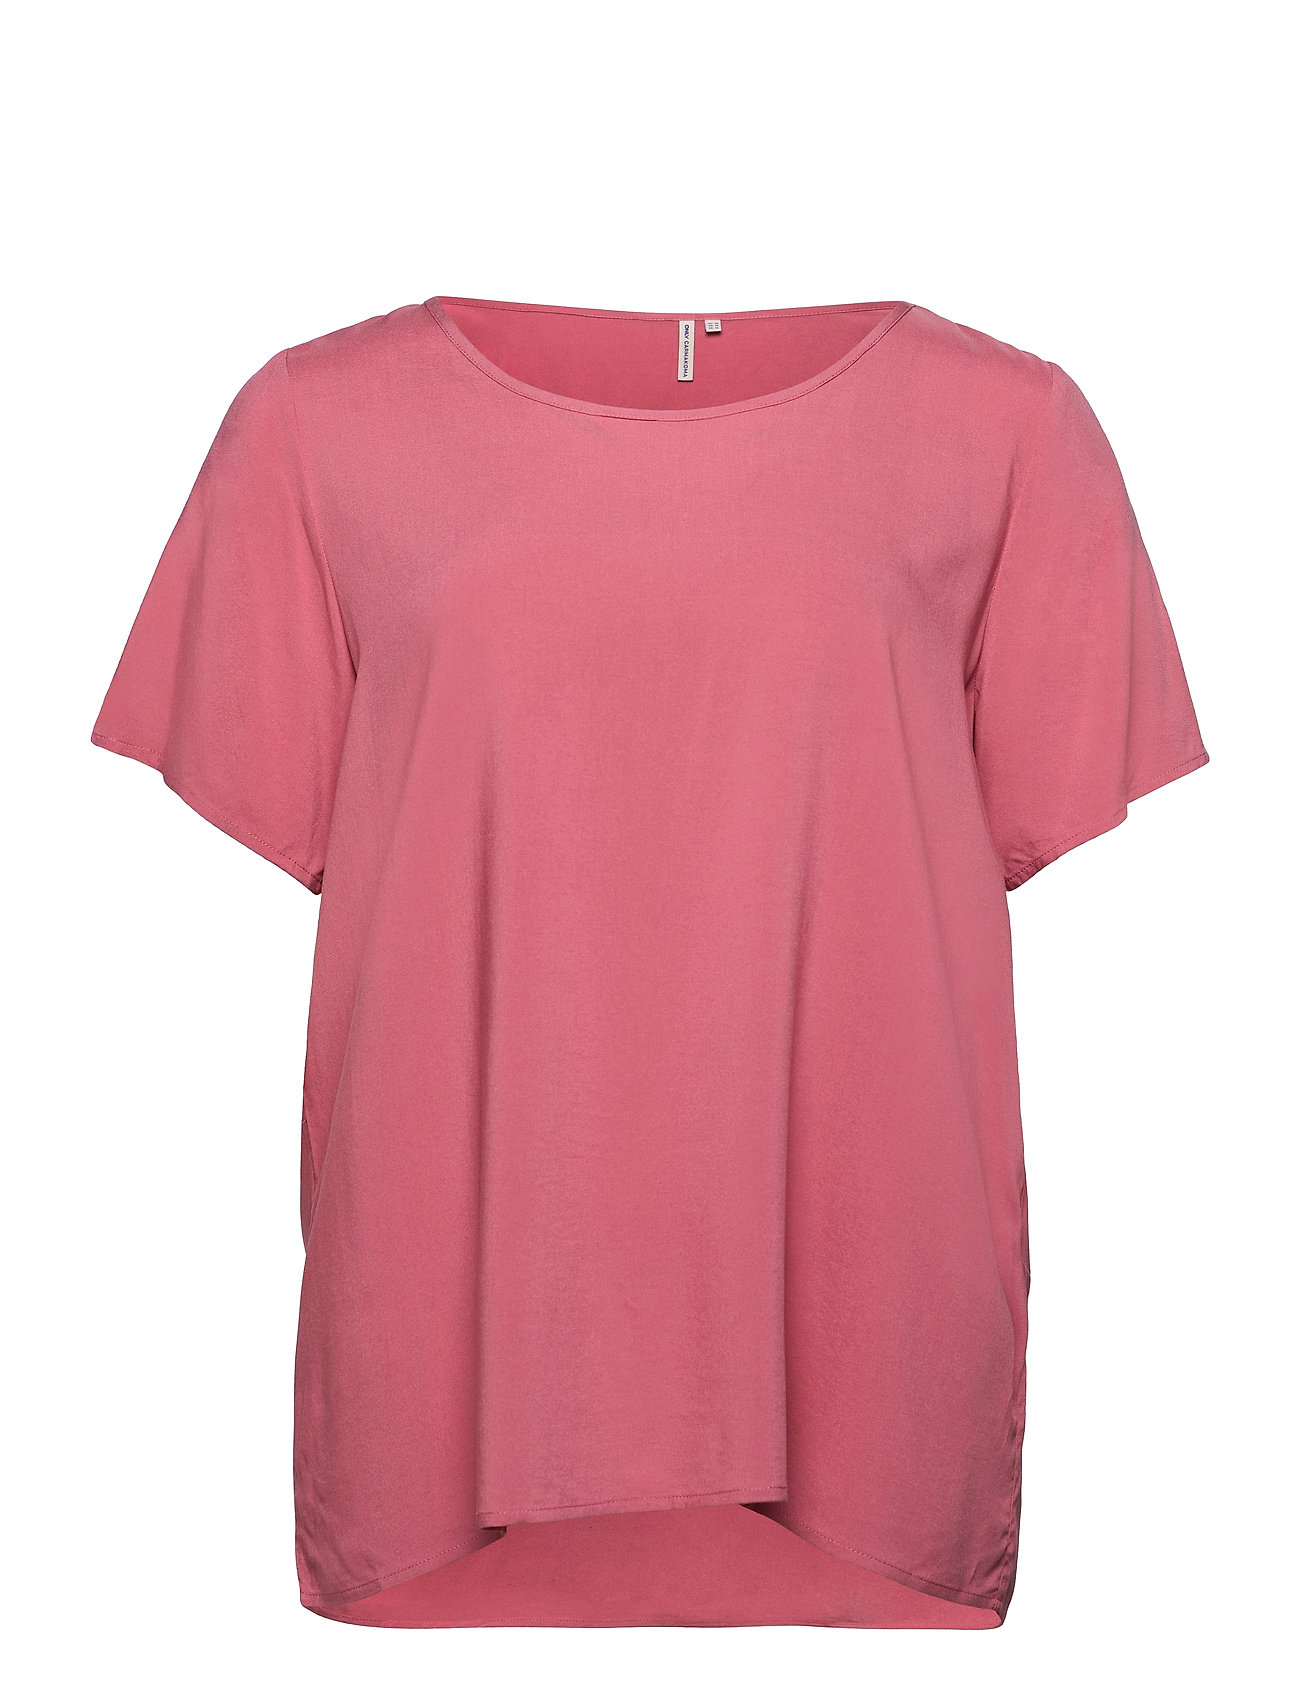 Image of Carfirstly Life Ss Top T-shirt Top Lyserød ONLY Carmakoma (3481873811)